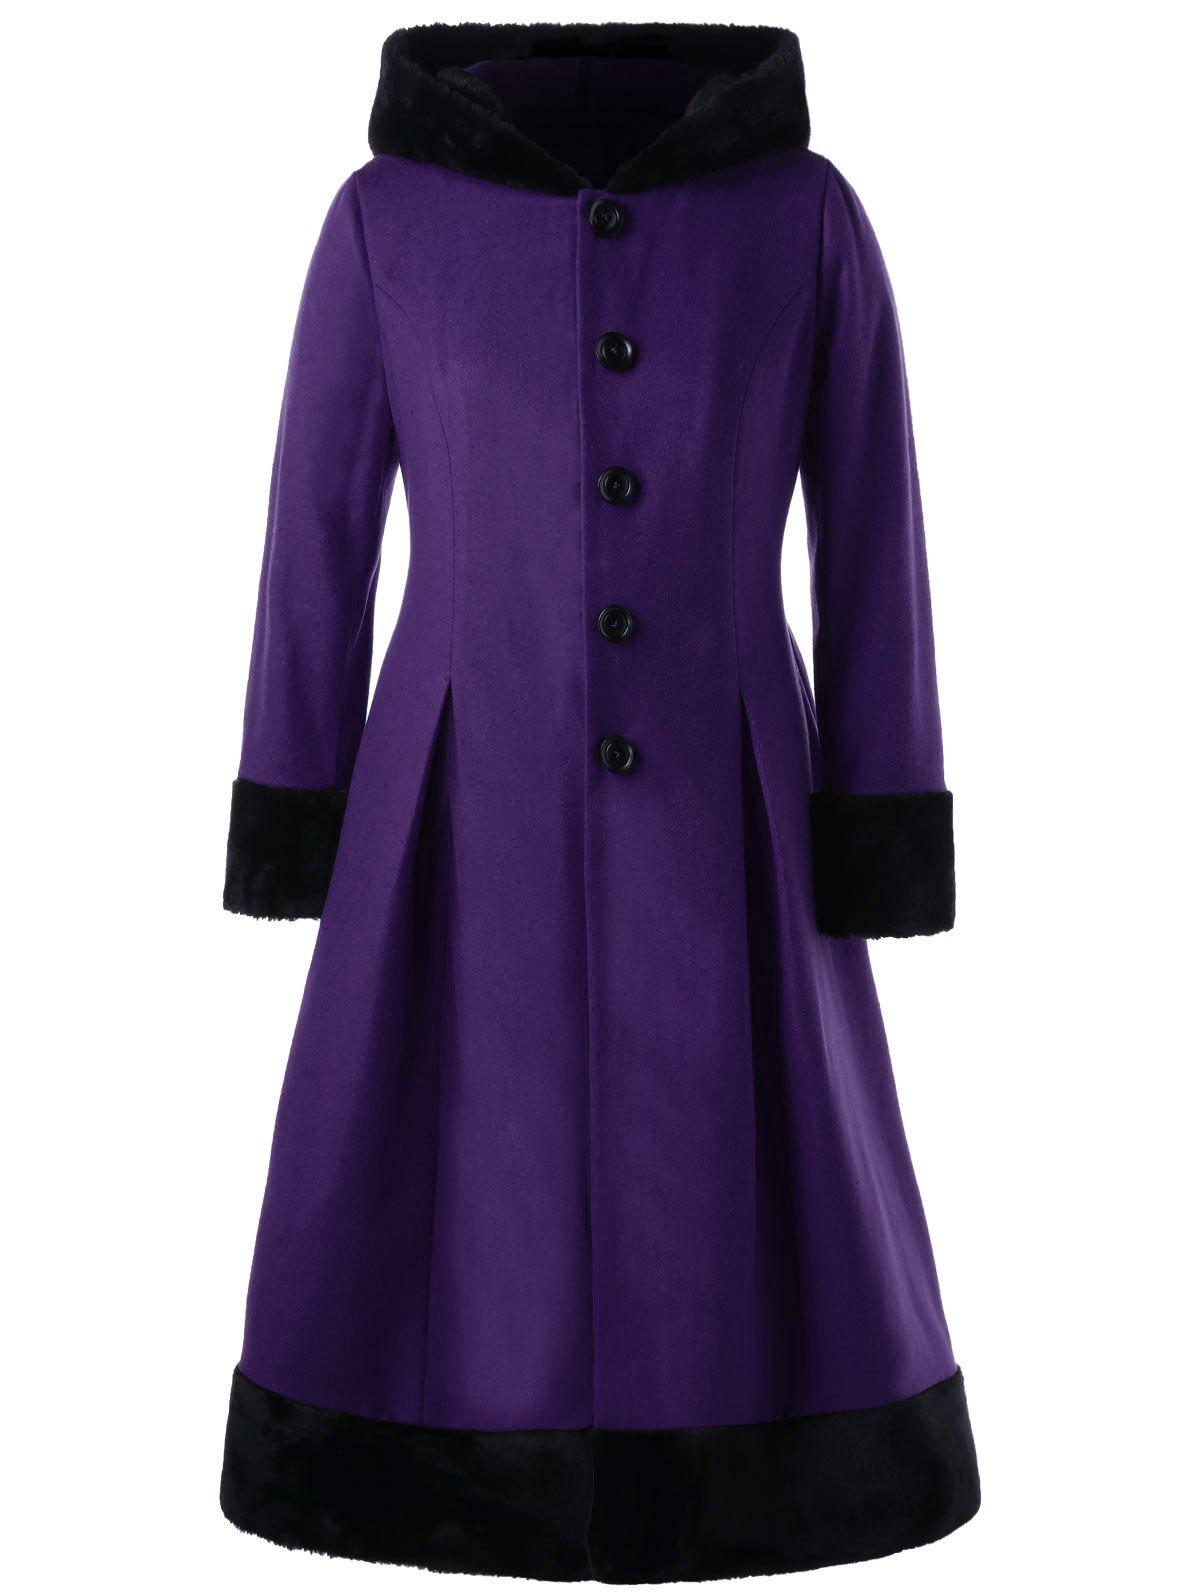 Plus Size Faux Fur Hooded Button Up Dress CoatWOMEN<br><br>Size: 4XL; Color: PURPLE; Clothes Type: Wool &amp; Blends; Material: Polyester,Wool; Type: Slim; Shirt Length: Long; Sleeve Length: Full; Collar: Hooded; Pattern Type: Solid; Style: Vintage; Season: Fall,Spring; Weight: 1.2000kg; Package Contents: 1 x Coat;